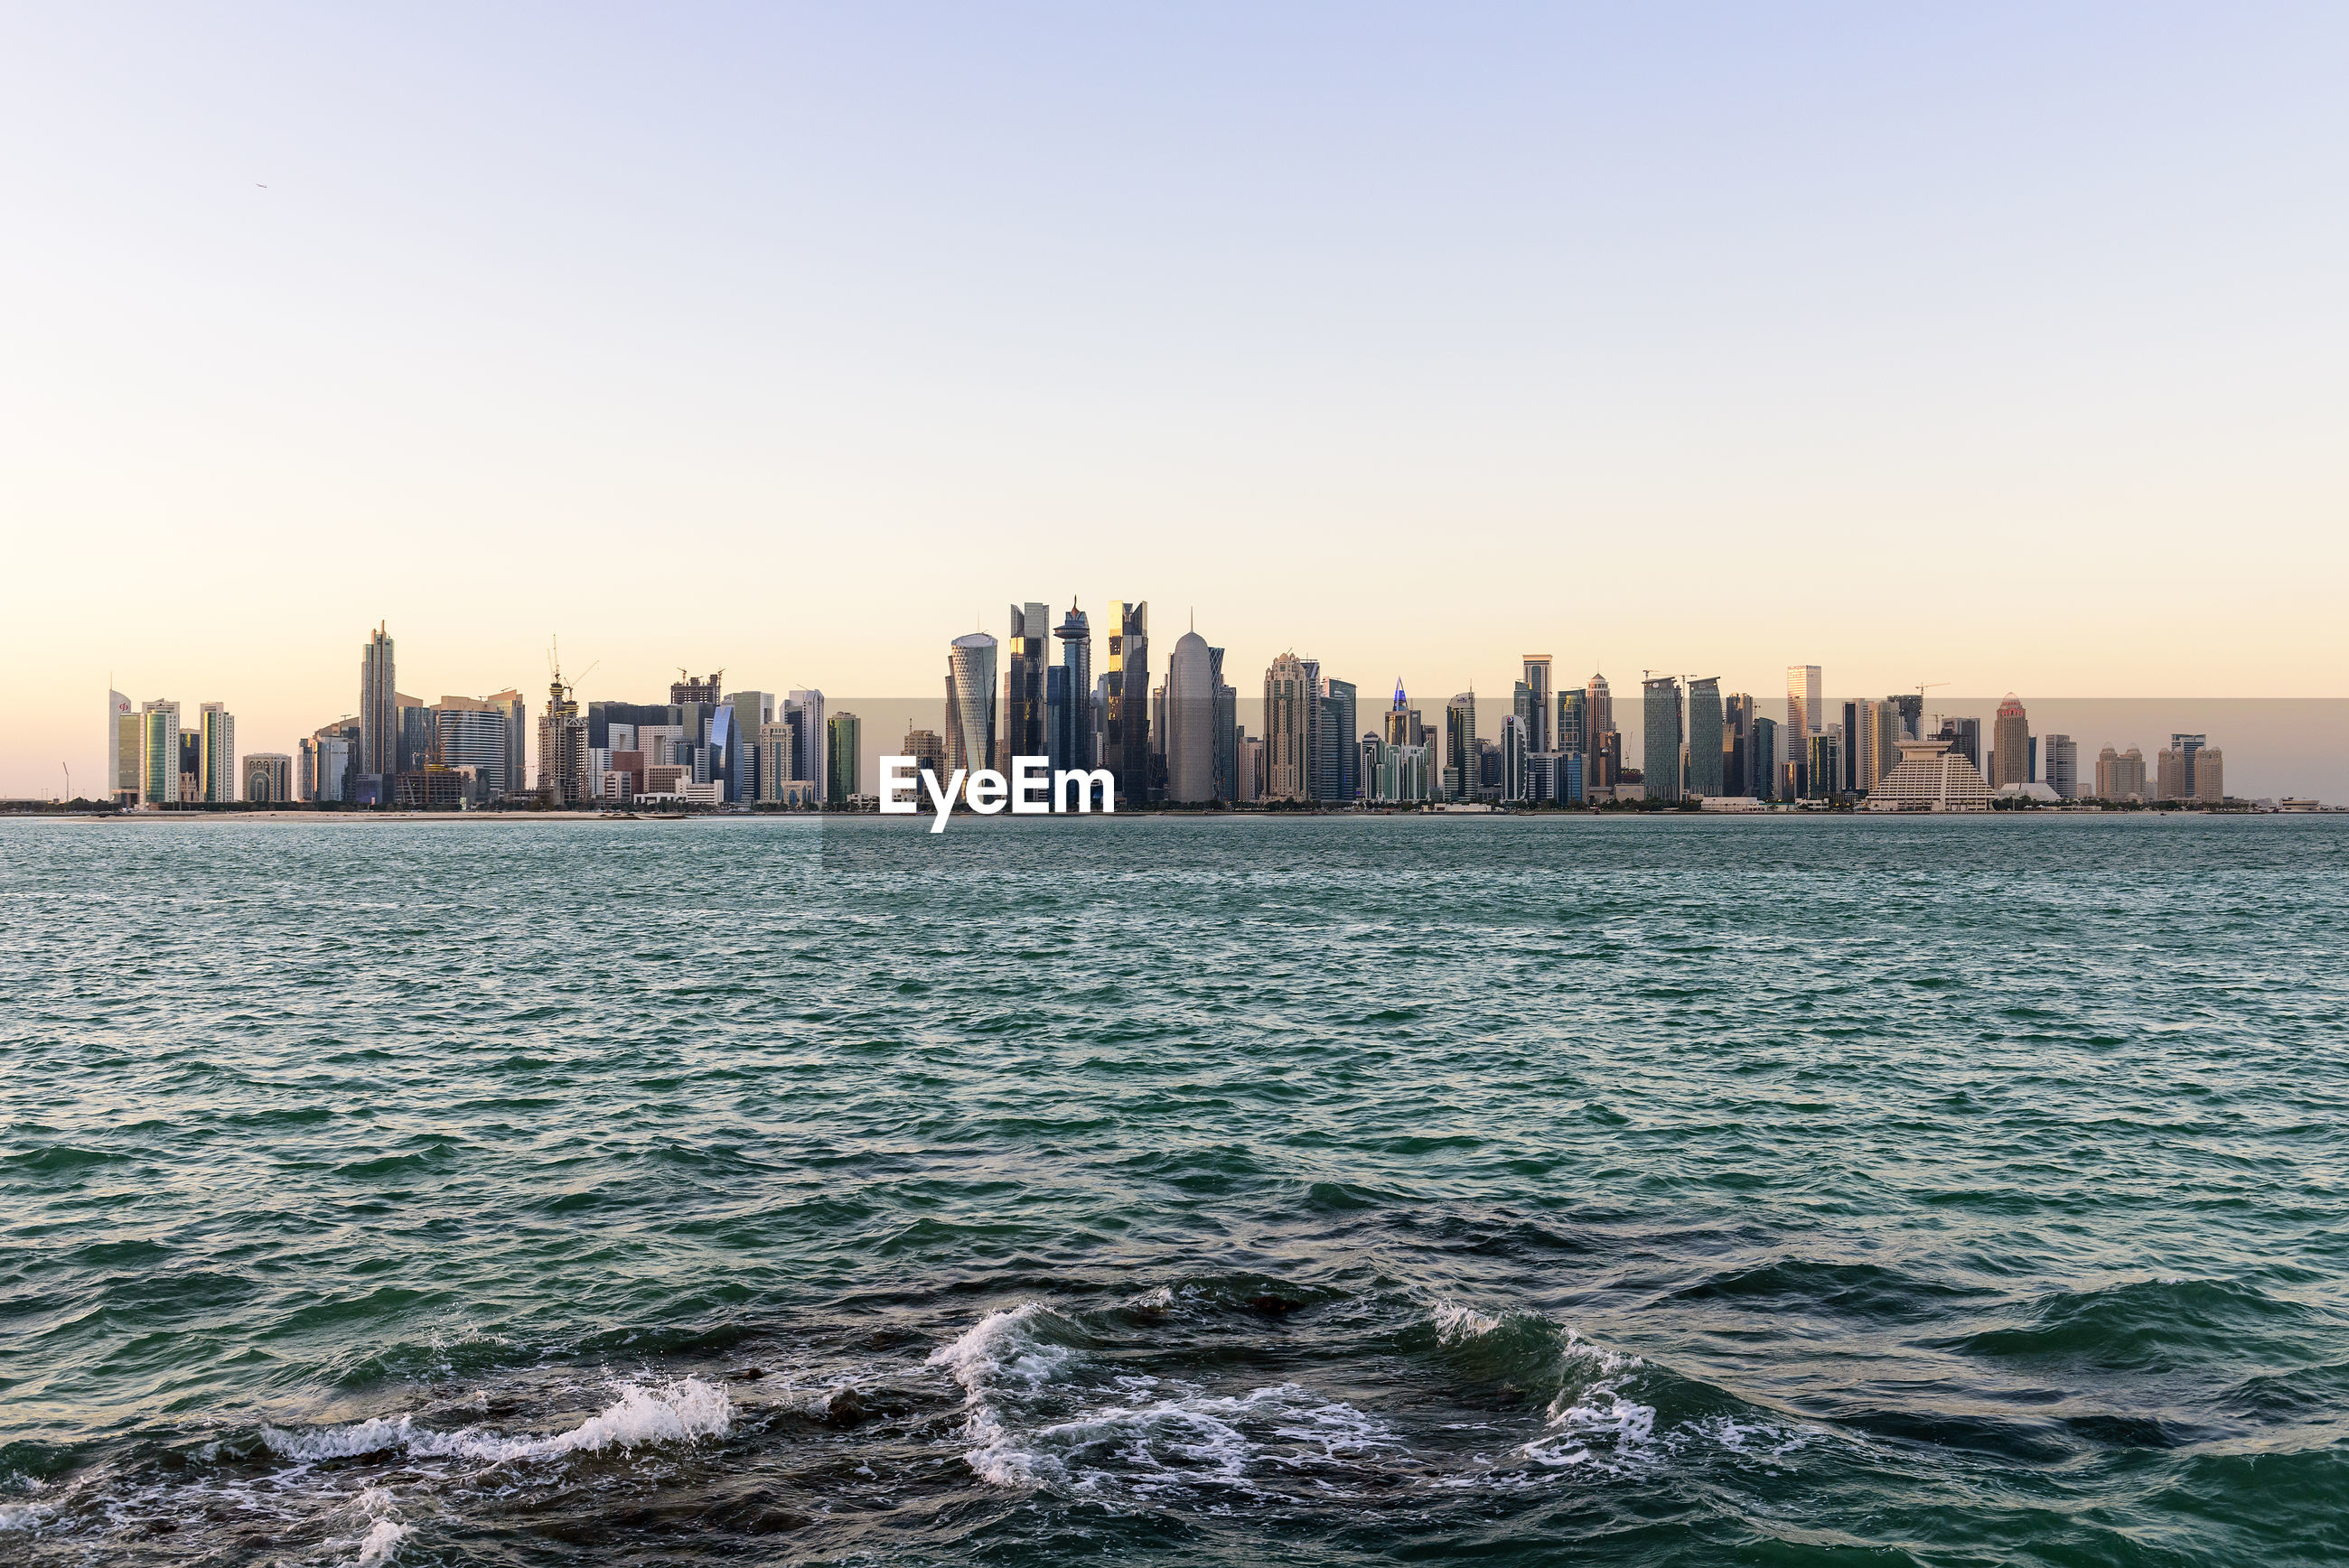 Sea and cityscape against clear sky